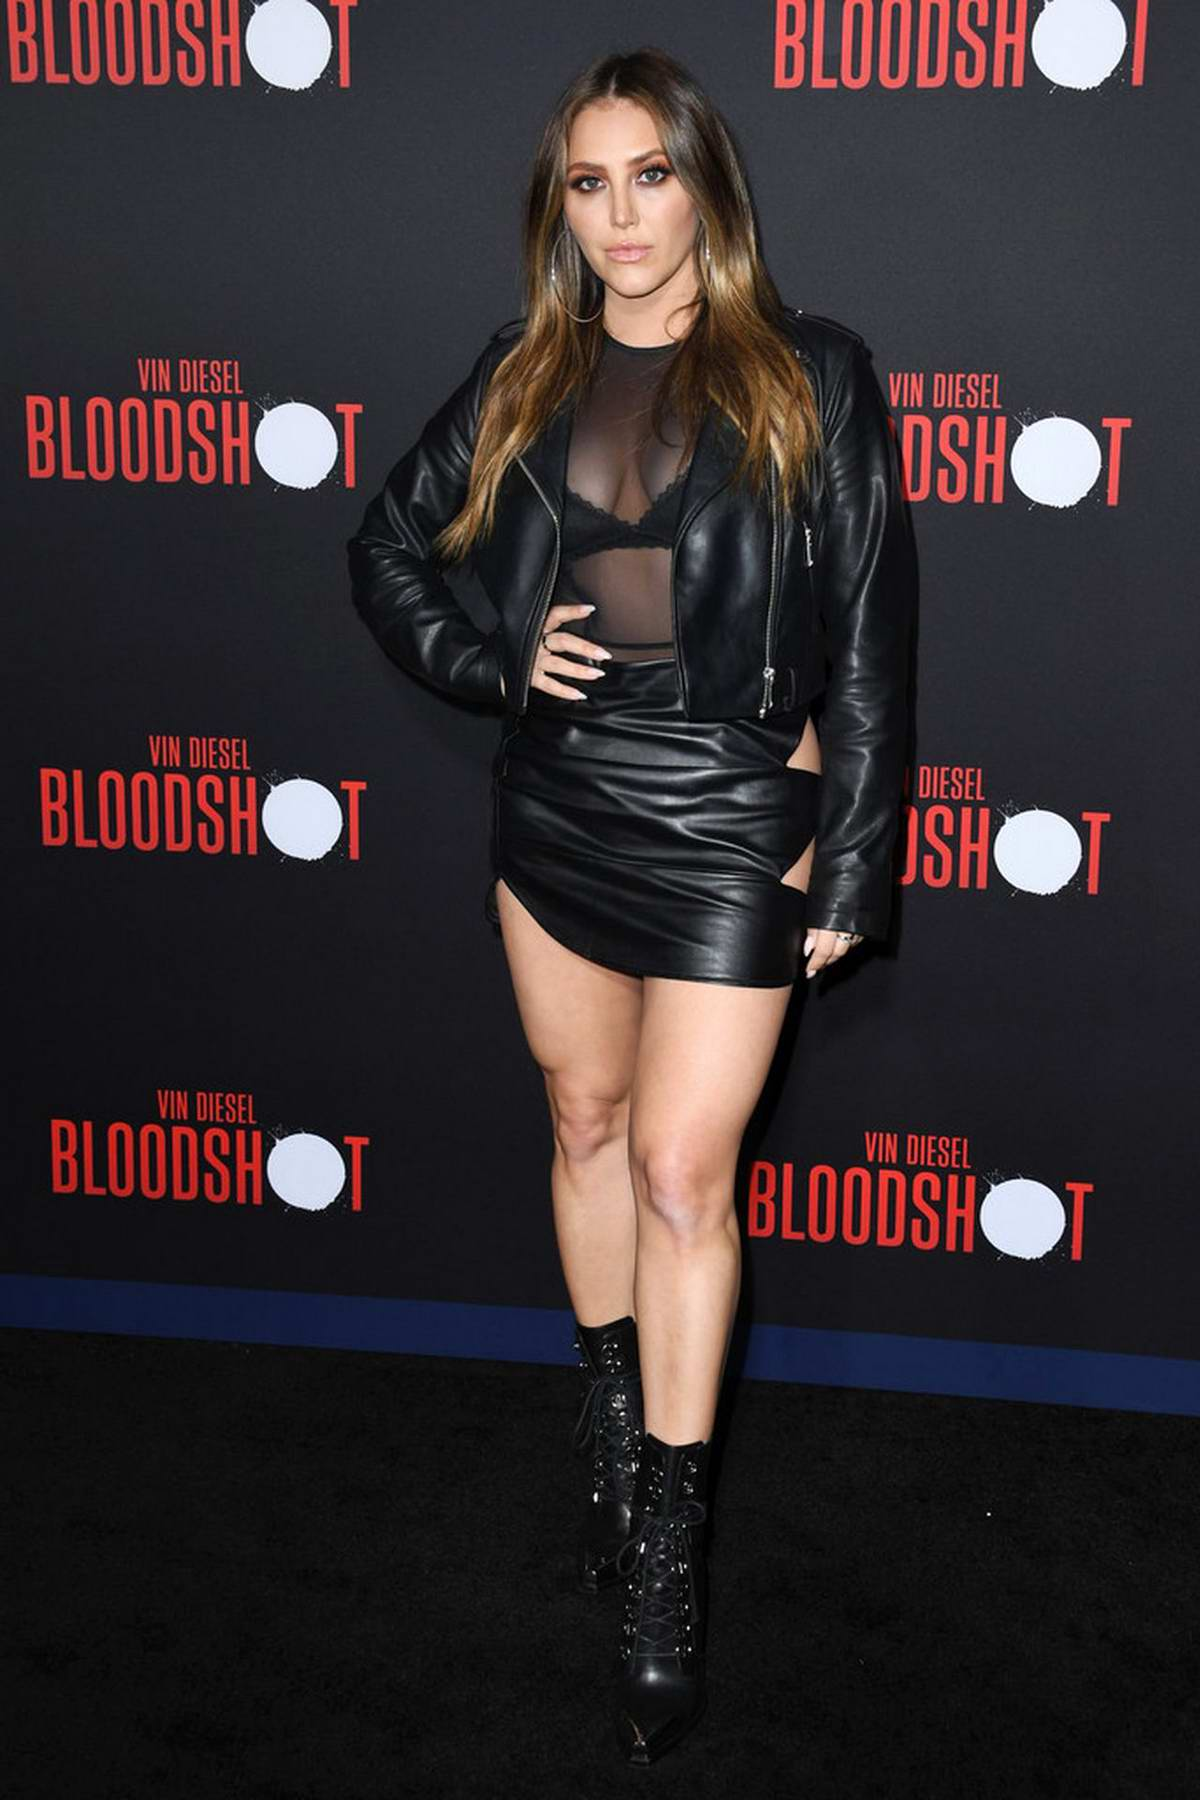 Cassie Scerbo attends the Premiere of 'Bloodshot' at the Regency Village Theatre in Westwood, California